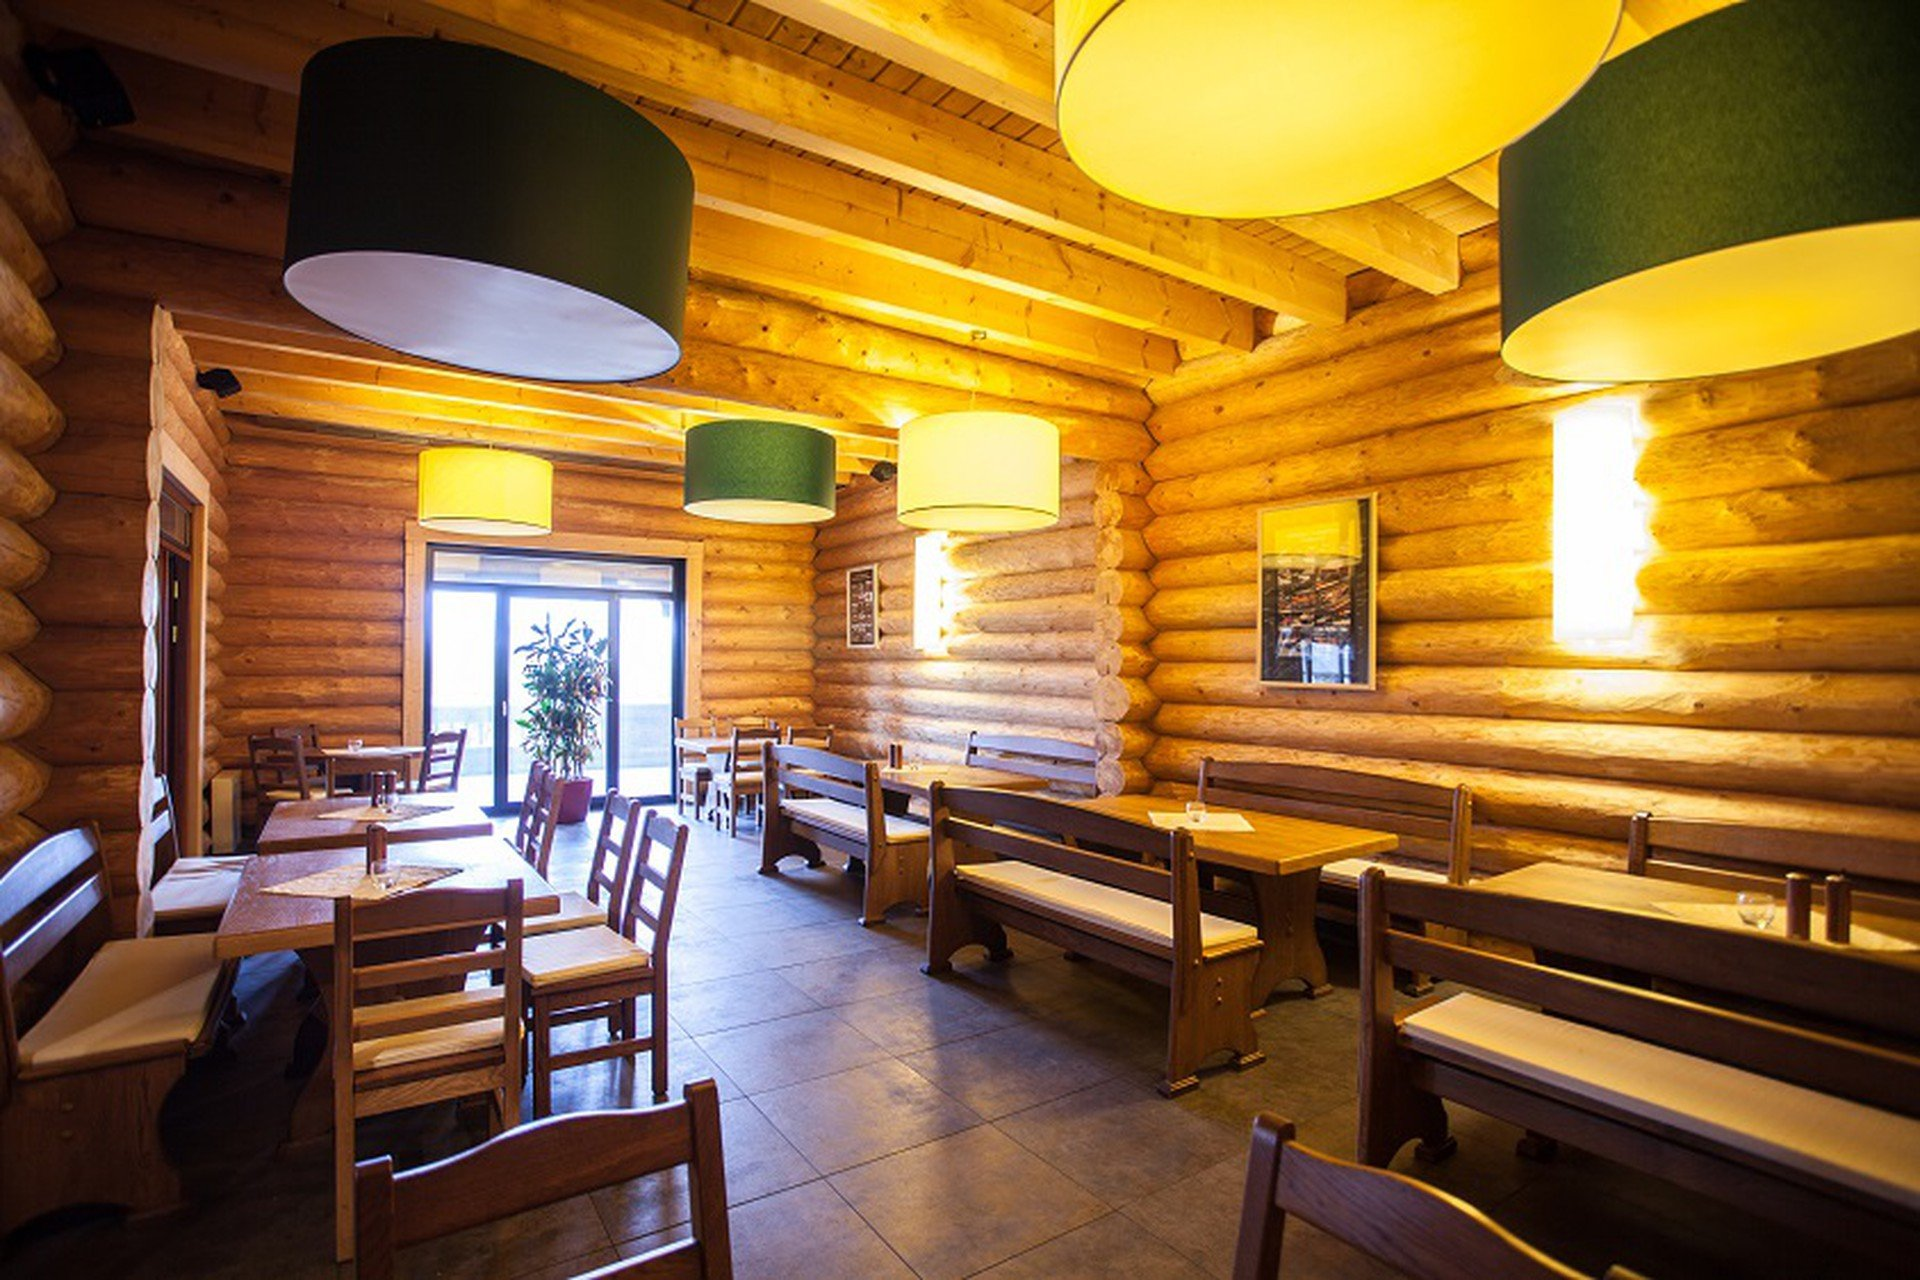 Hannover seminar rooms Restaurant Rodizio Baumhaus image 3